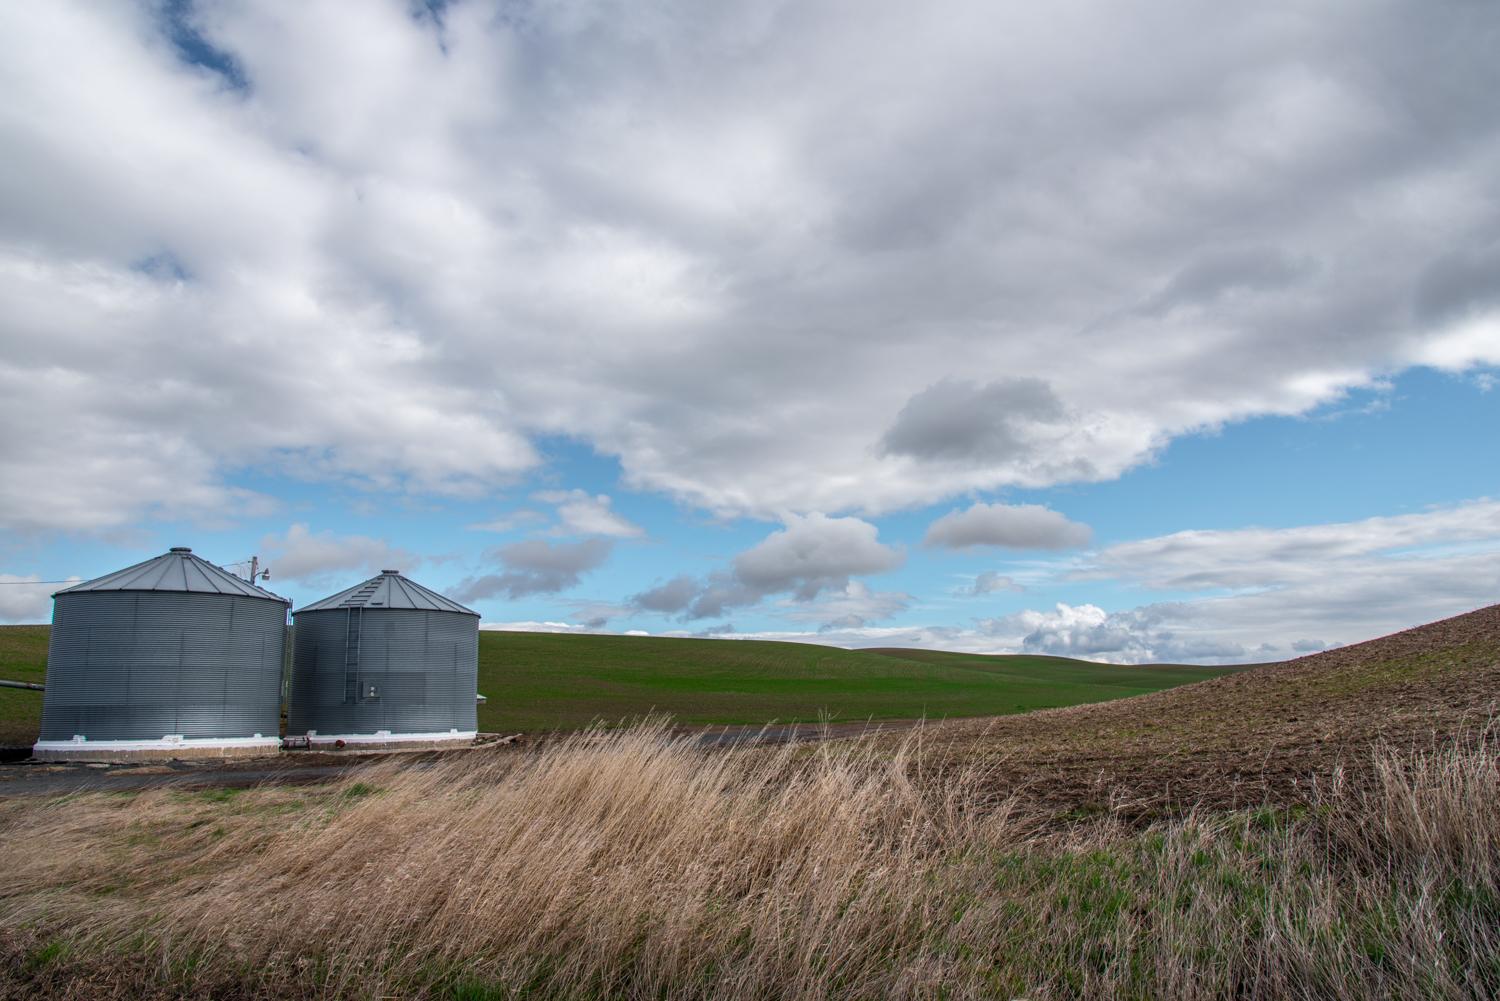 Grain Bins and Big Skies